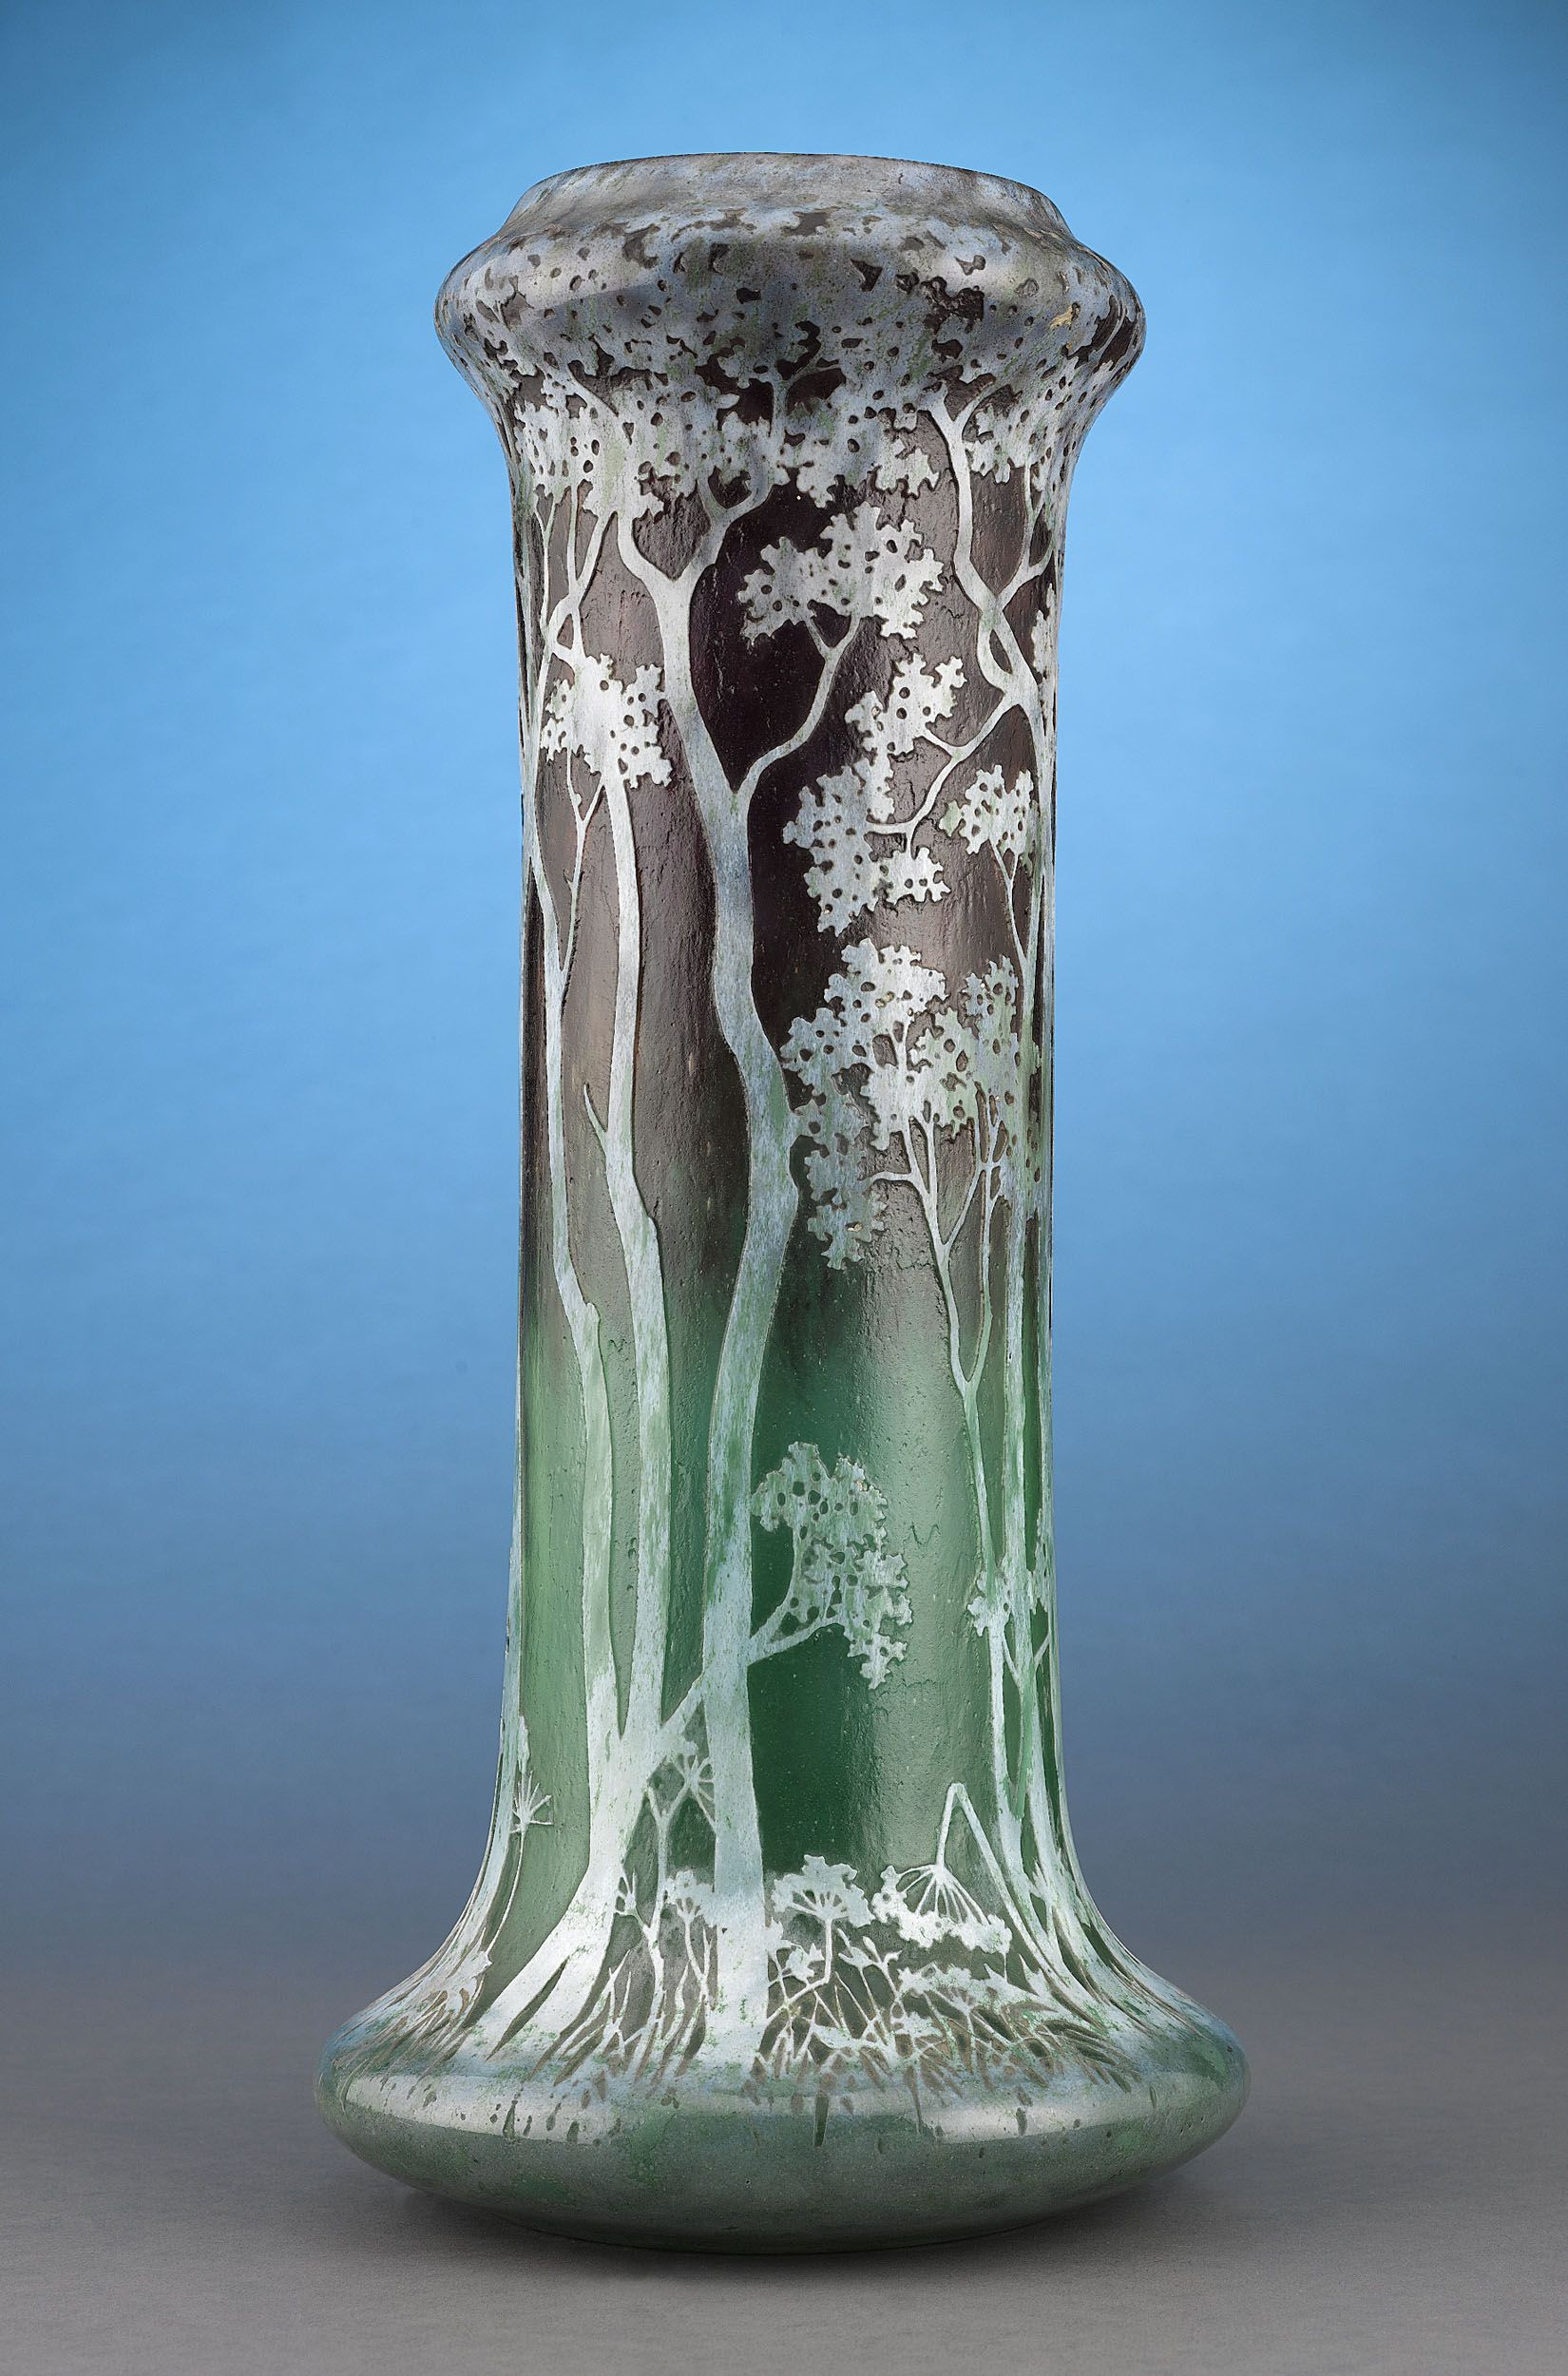 cameo glass vase of daum nancy woodland cameo glass vase daum nancy pinterest in daum nancy woodland cameo glass vase